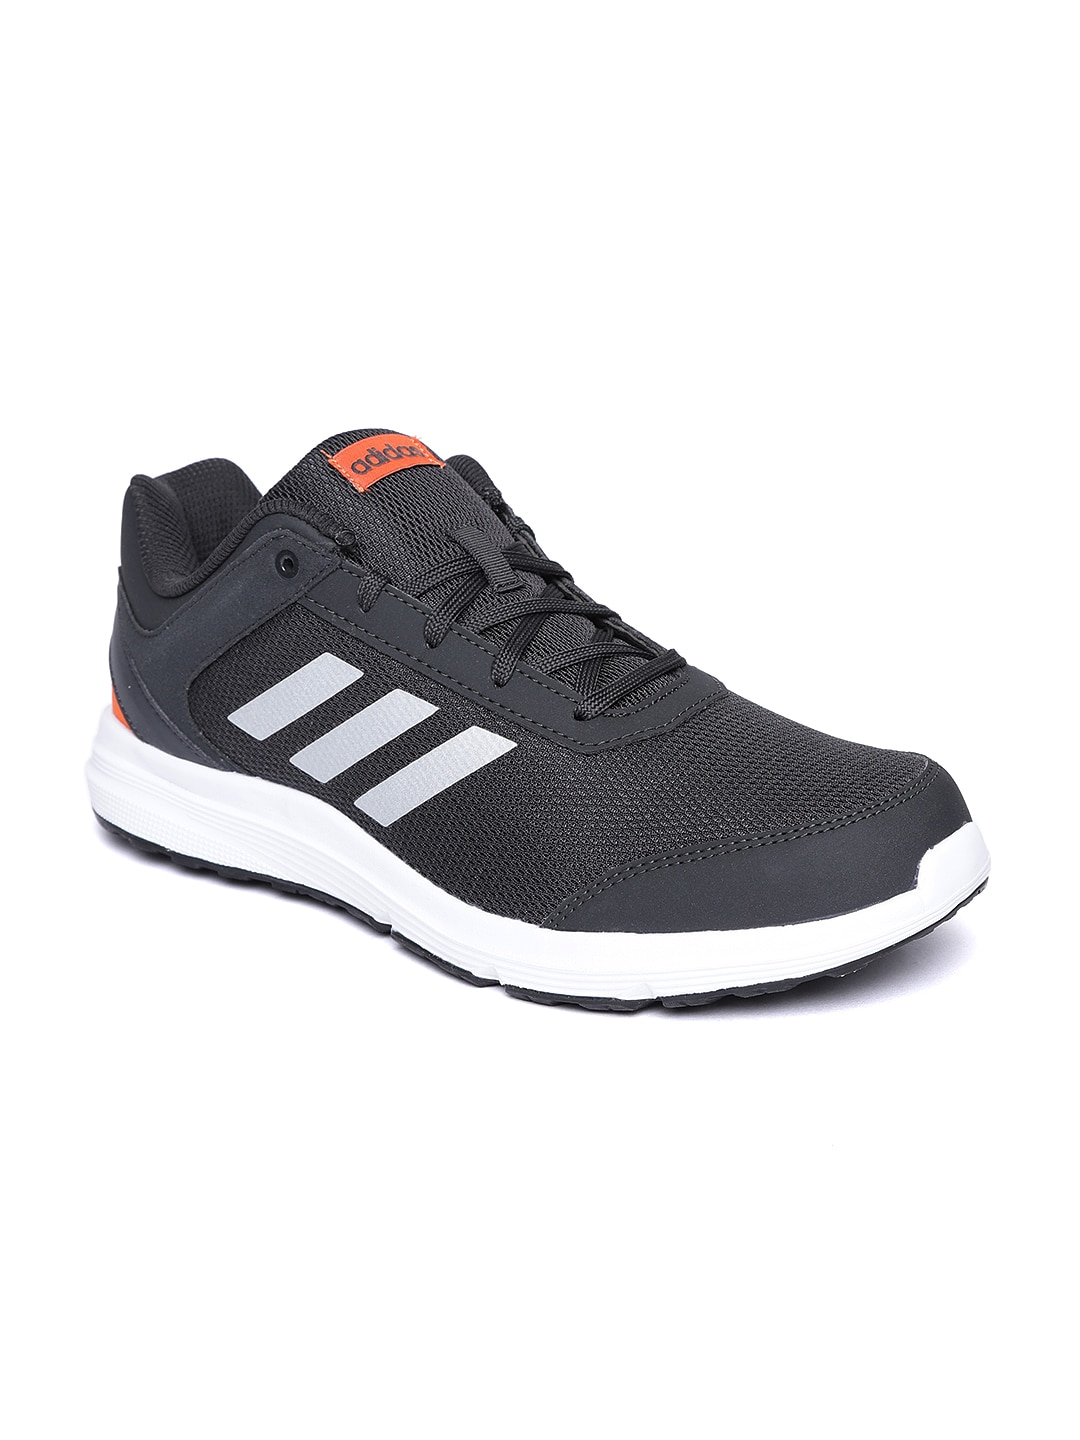 9b83fc5f0cd3 Adidas Sports Shoes - Buy Addidas Sports Shoes Online